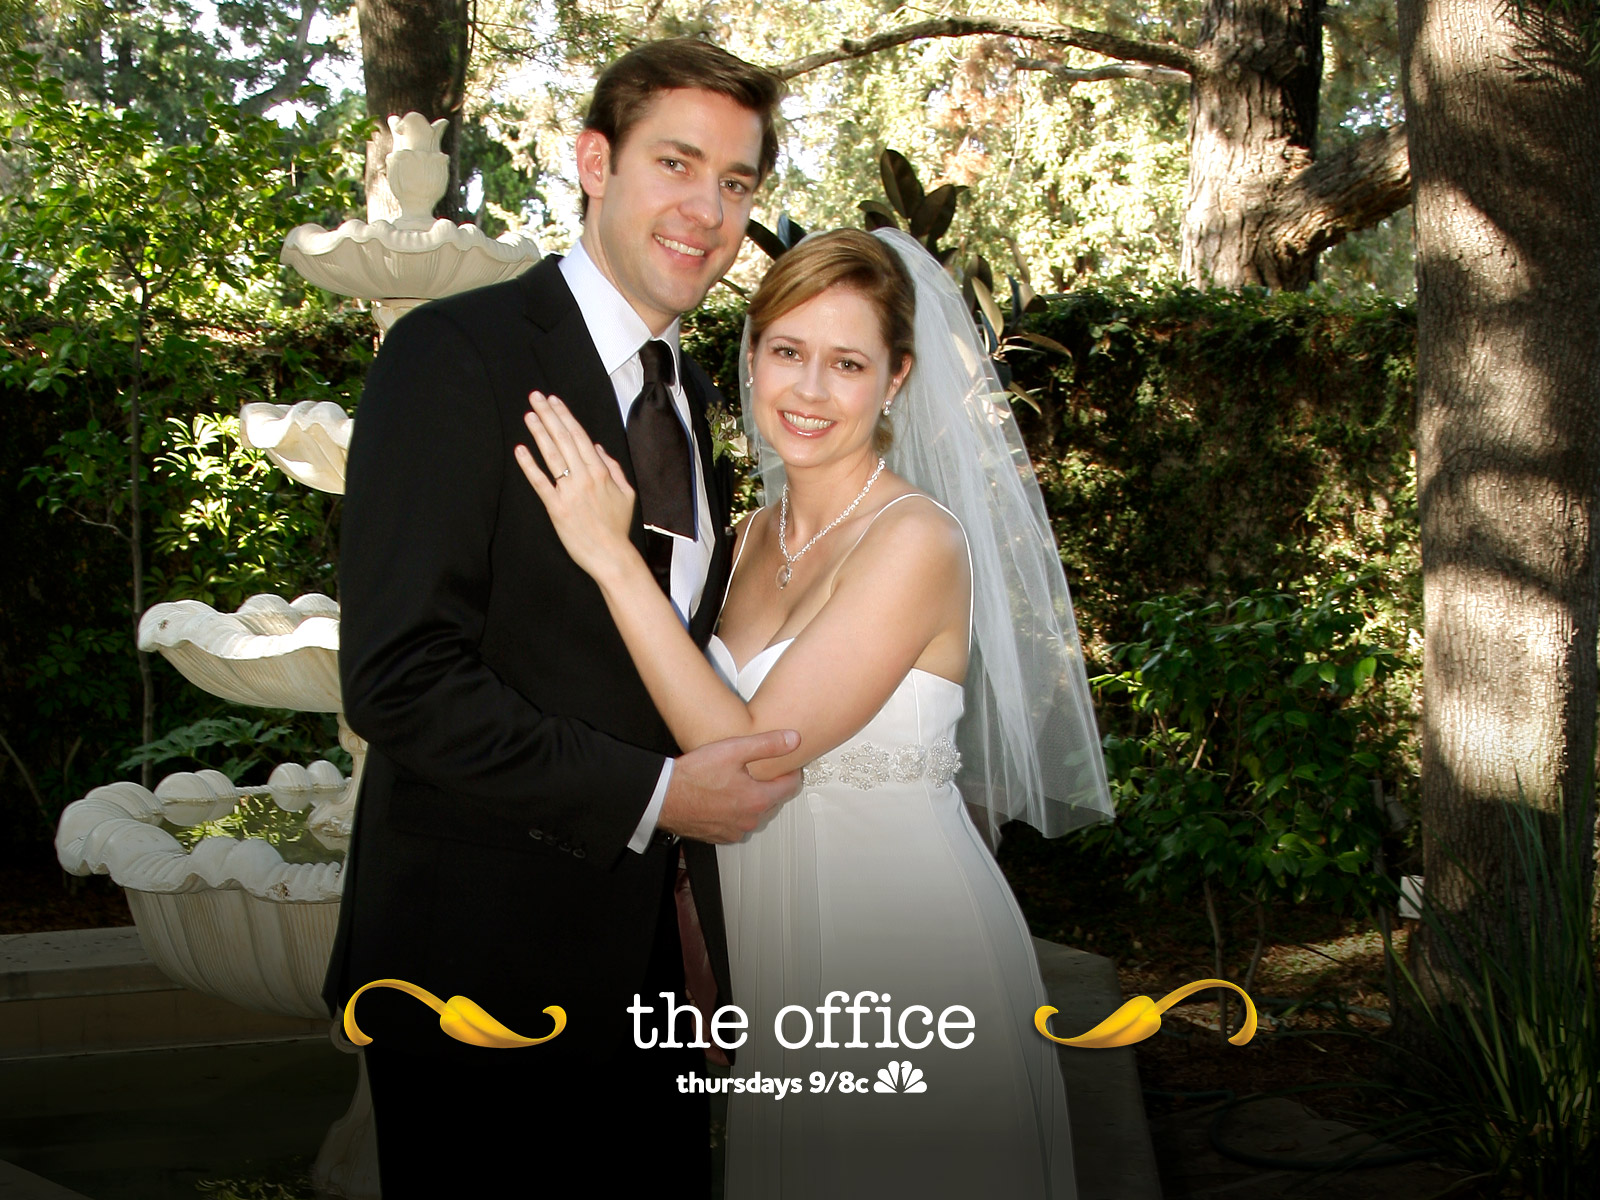 the office wedding